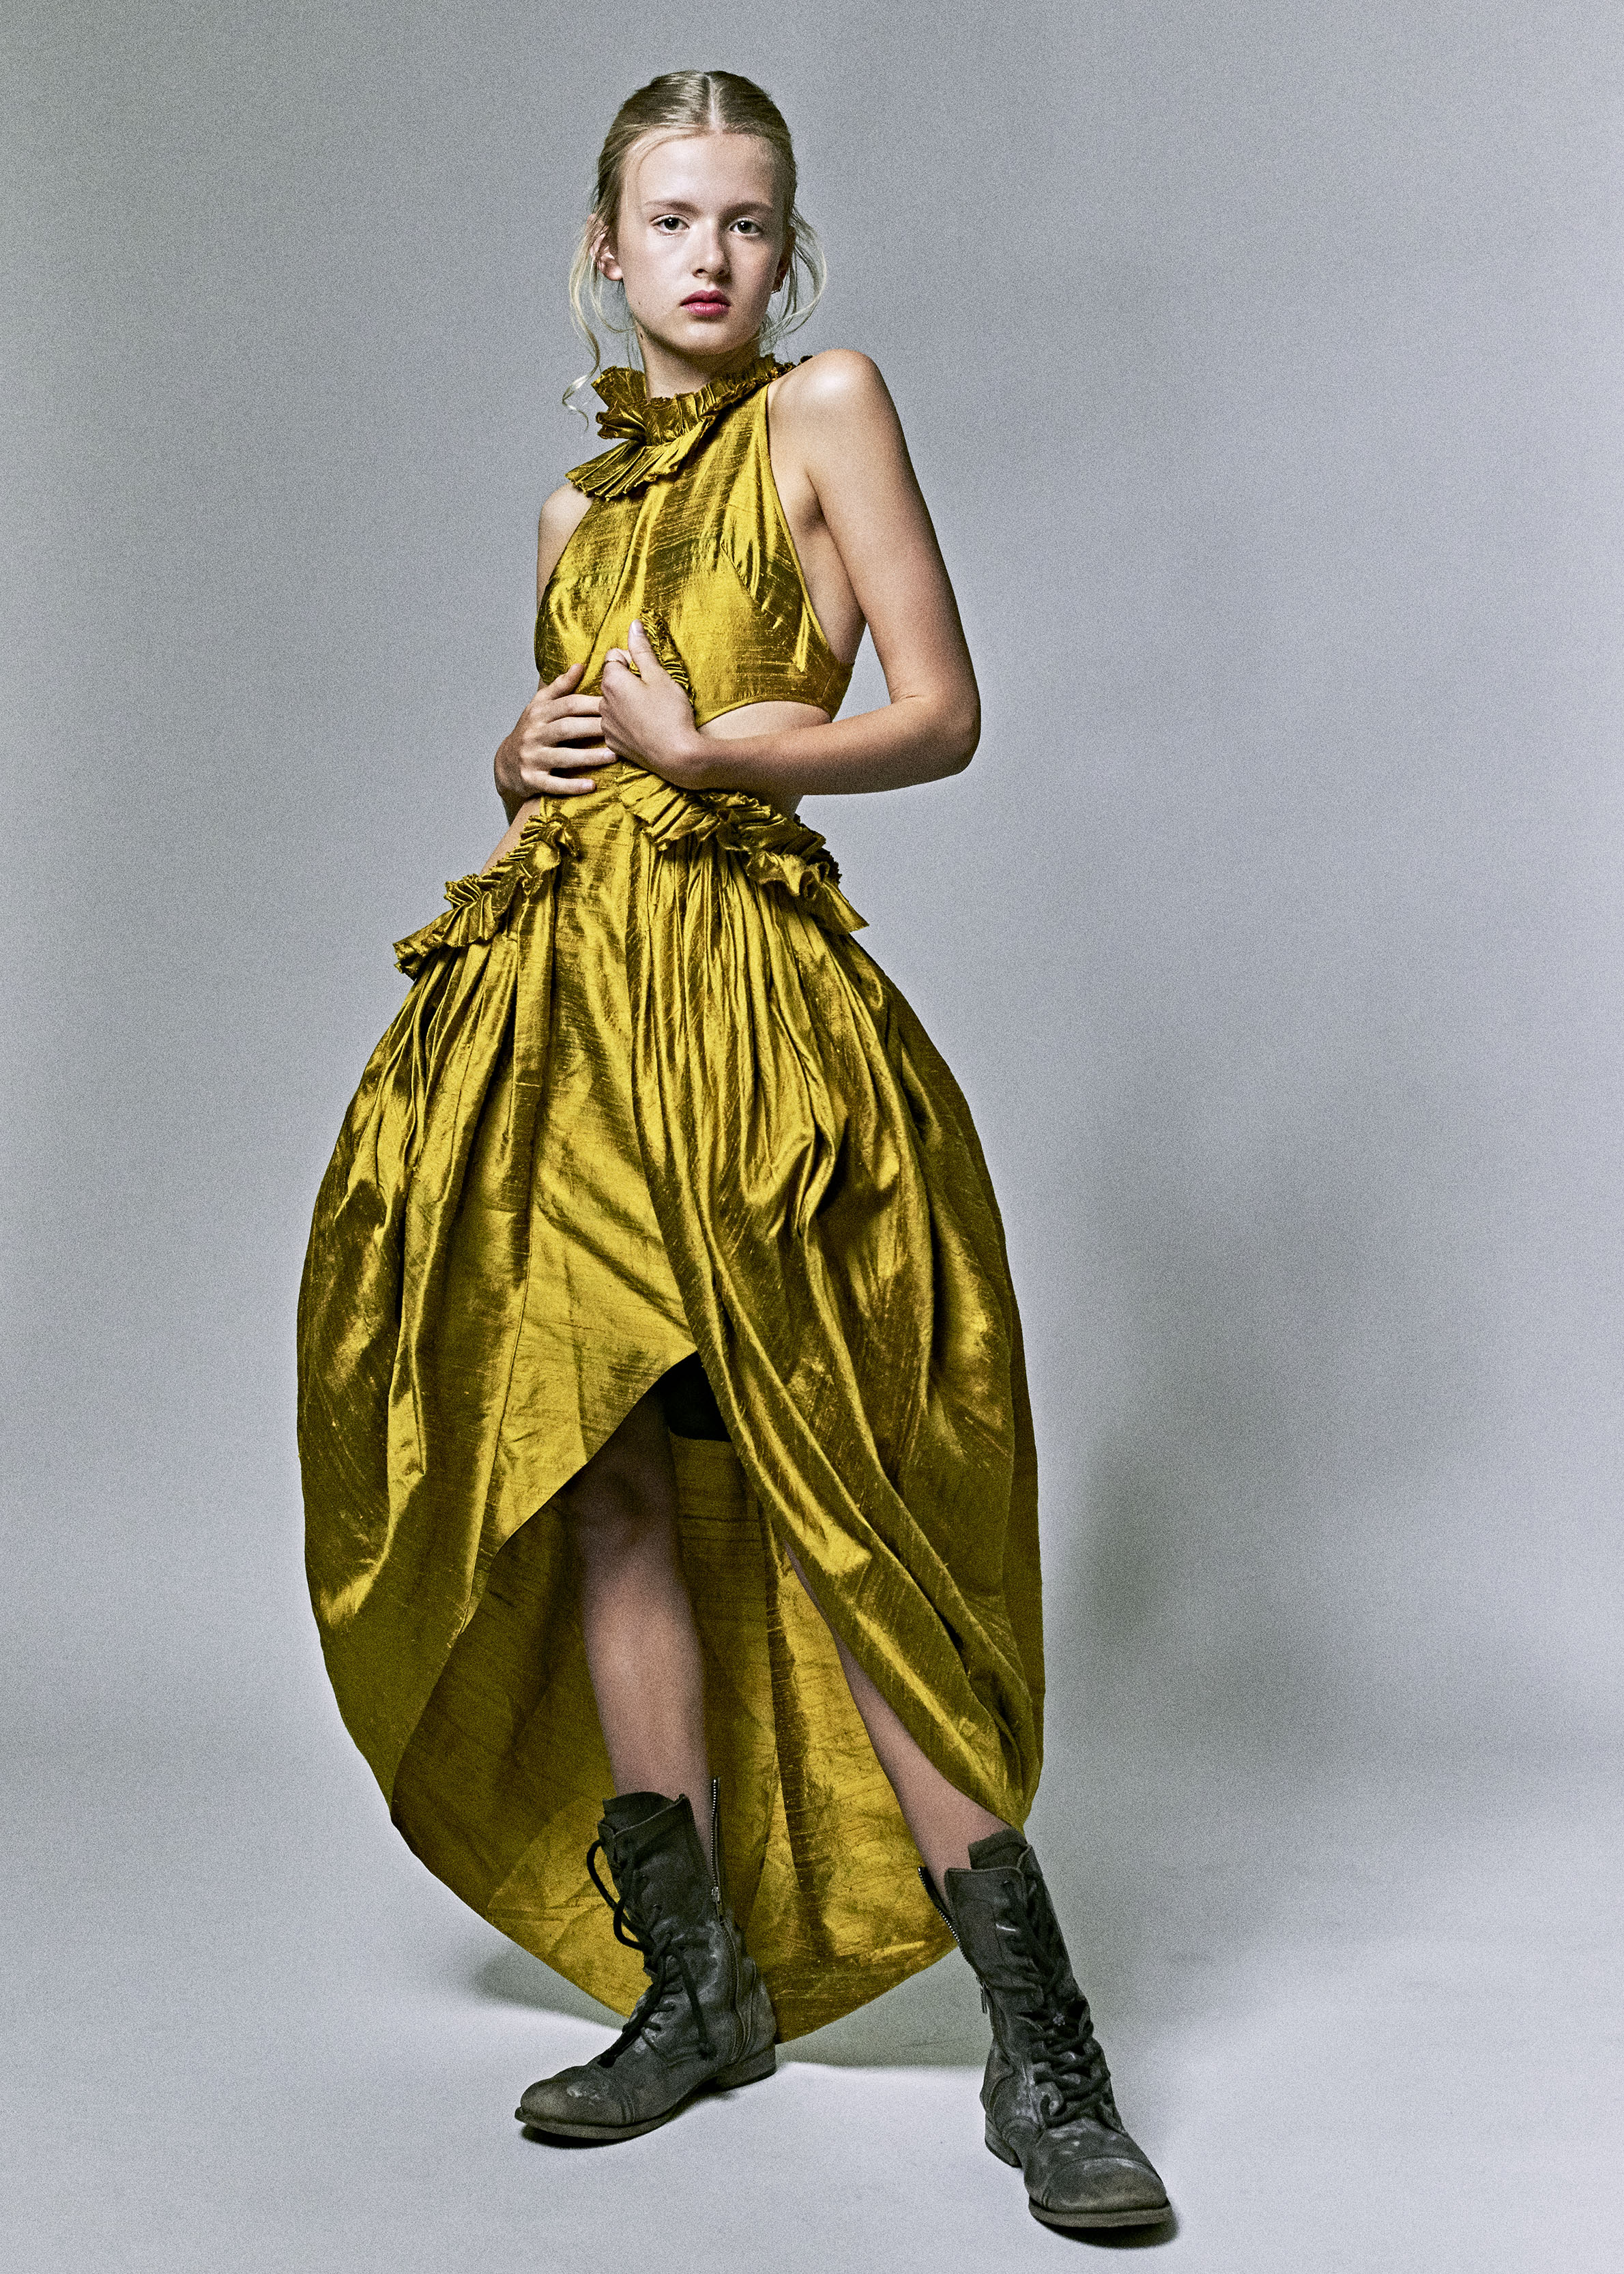 Copy of kelsey randall model gold yellow citrine raw silk shantung asymmetrical ruffle sleeve side cut out gathered ruffled flounce long gown high-low hem tulip high neck dress black leather combat boots